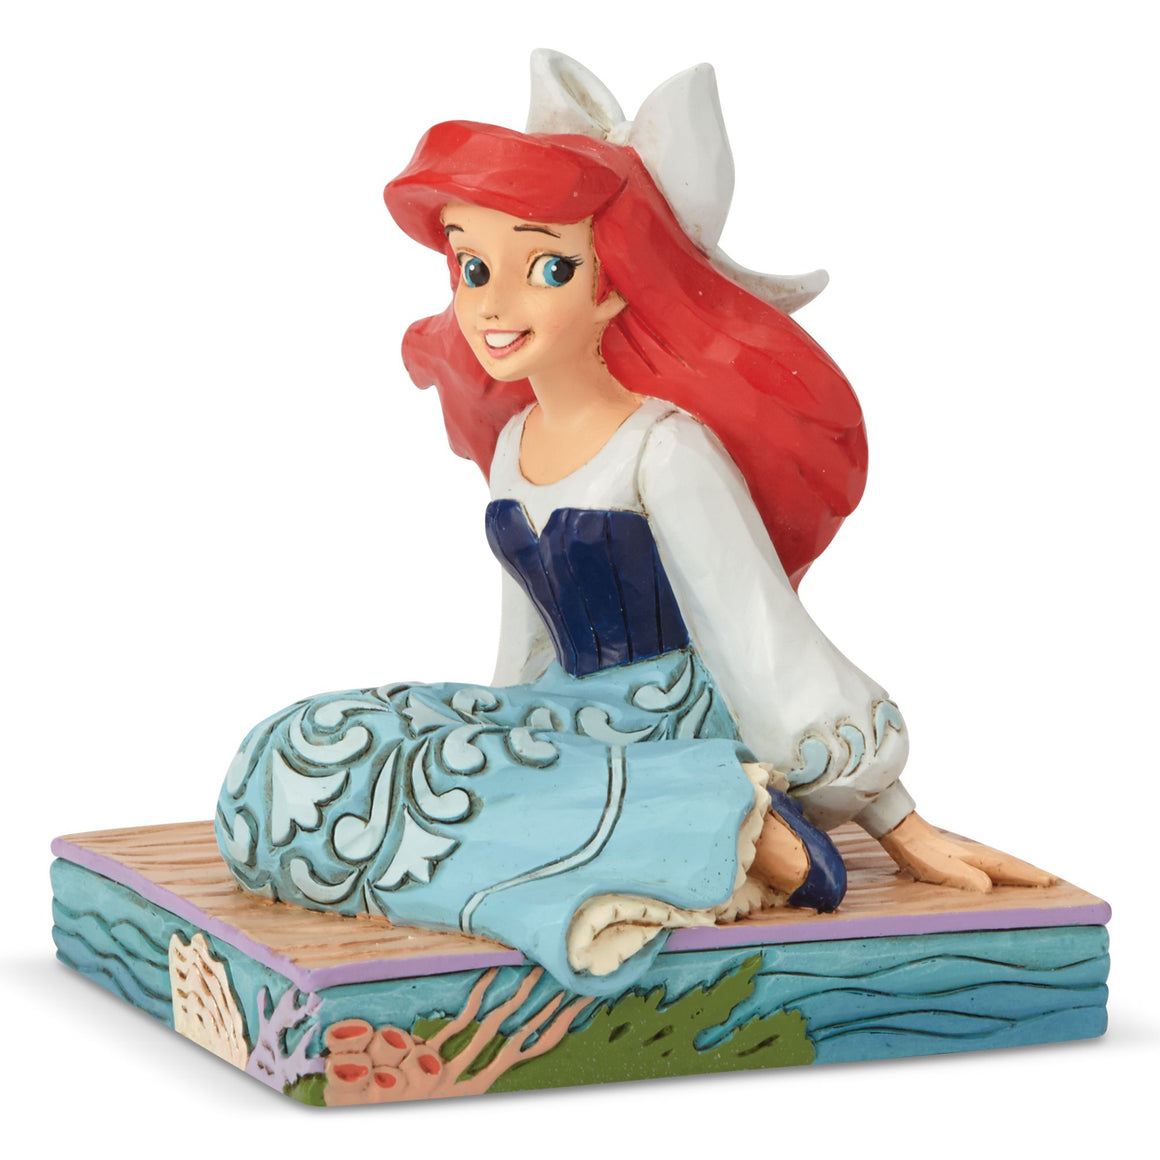 Be Bold -Ariel Figurine - Disney Traditions by Jim Shore